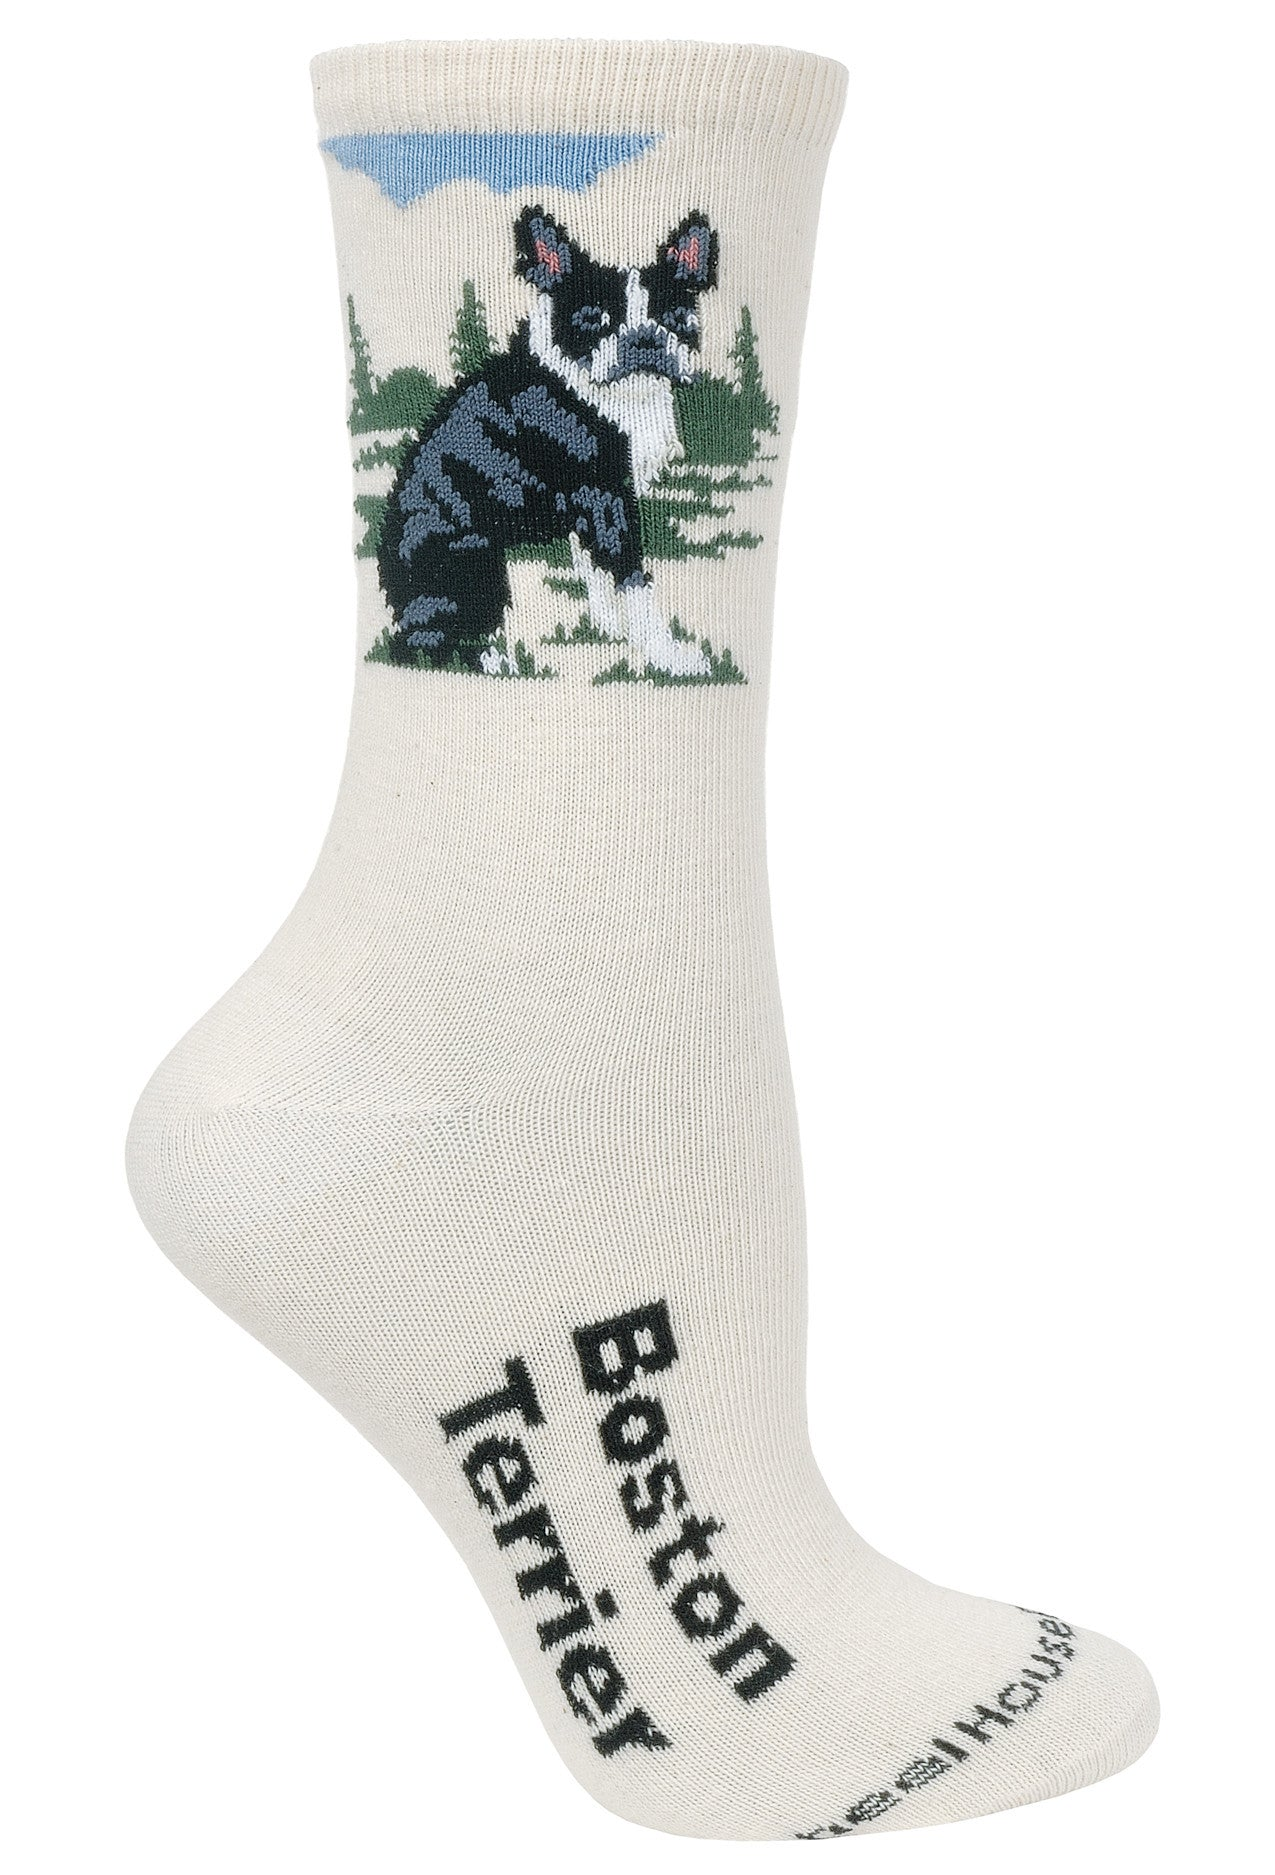 Boston Terrier on Natural Socks